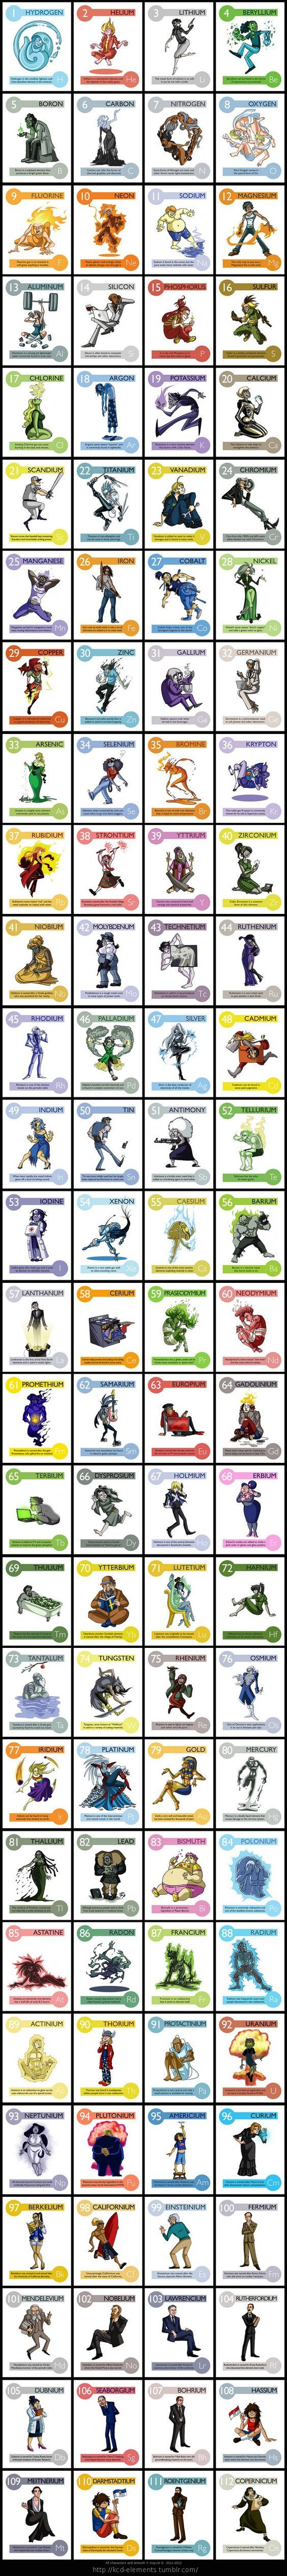 Best 25 tin periodic table ideas on pinterest periodic table love these gamestrikefo Choice Image